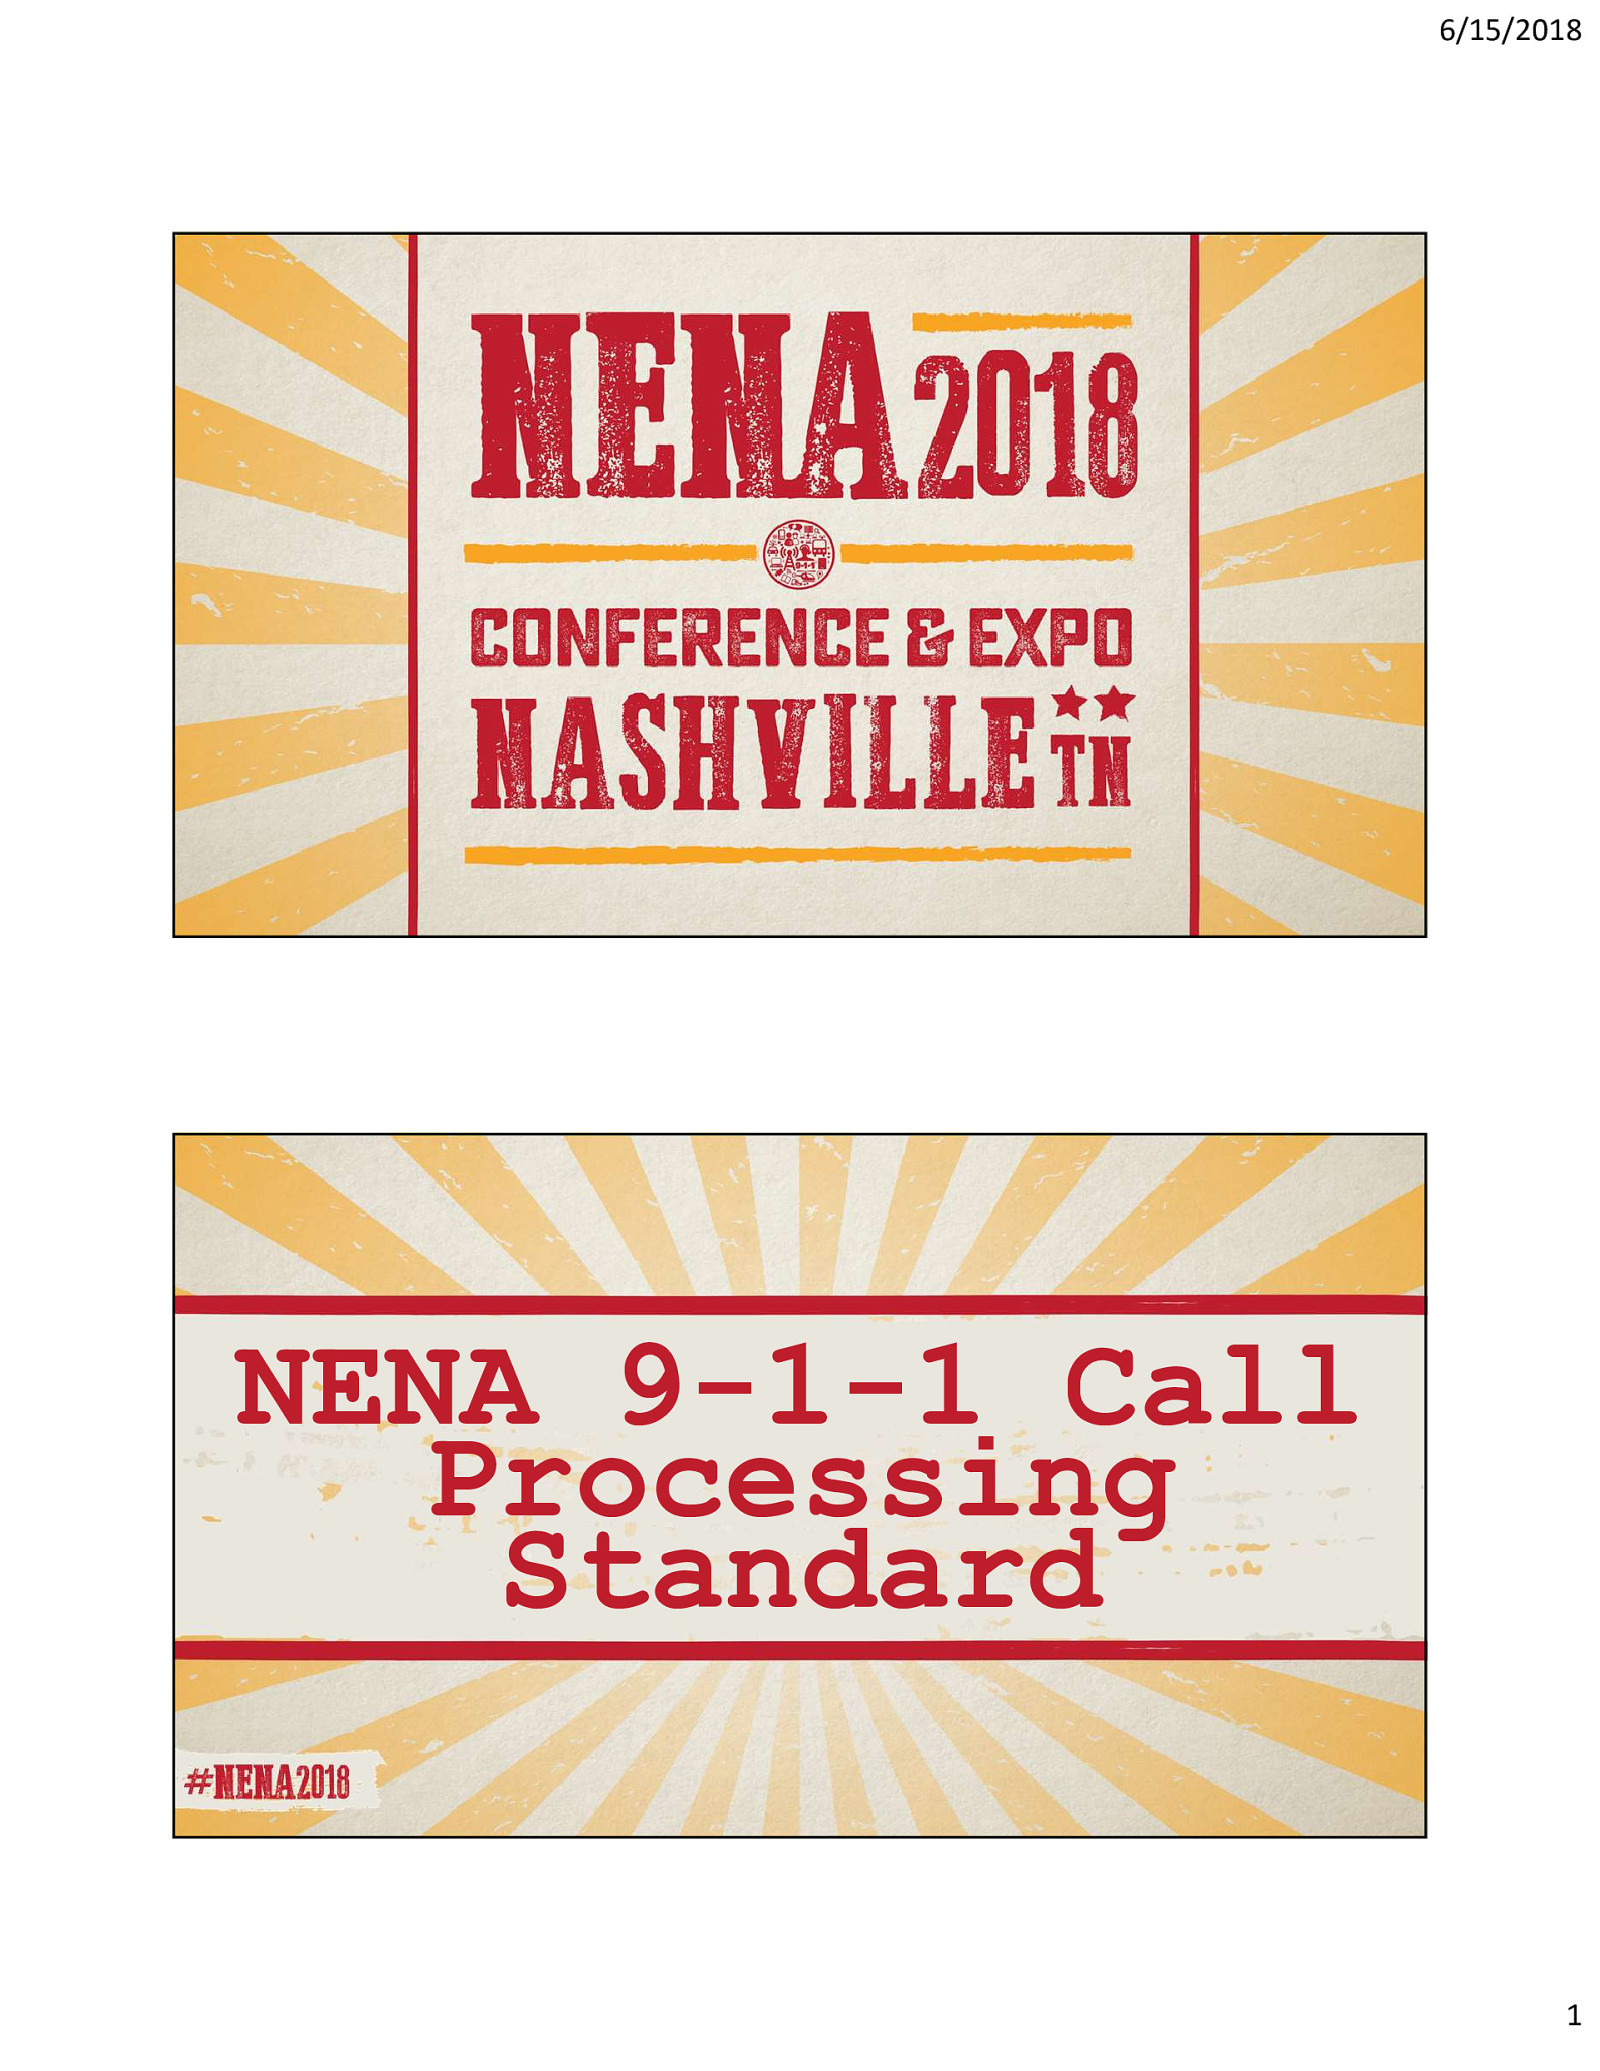 9-1-1 Call Processing - The New ANSI Standard